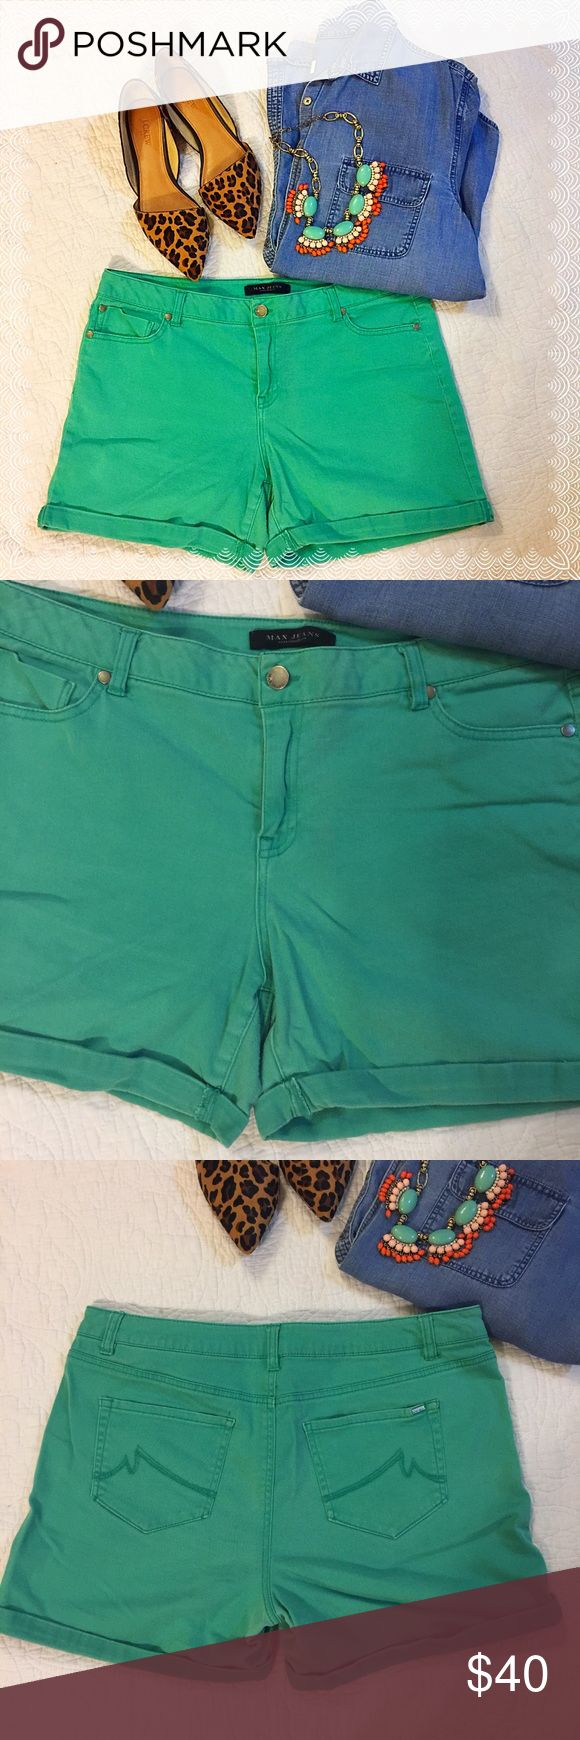 Turquoise Jean Shorts • Max Jeans size 14 • Great used condition  • Turquoise color  • Open front and back pockets  • Fitted but comfortable stretchy material (98% cotton/2% spandex) • Belt loops  • Negotiable with reasonable offers ☺️💕 Max Jeans Shorts Jean Shorts